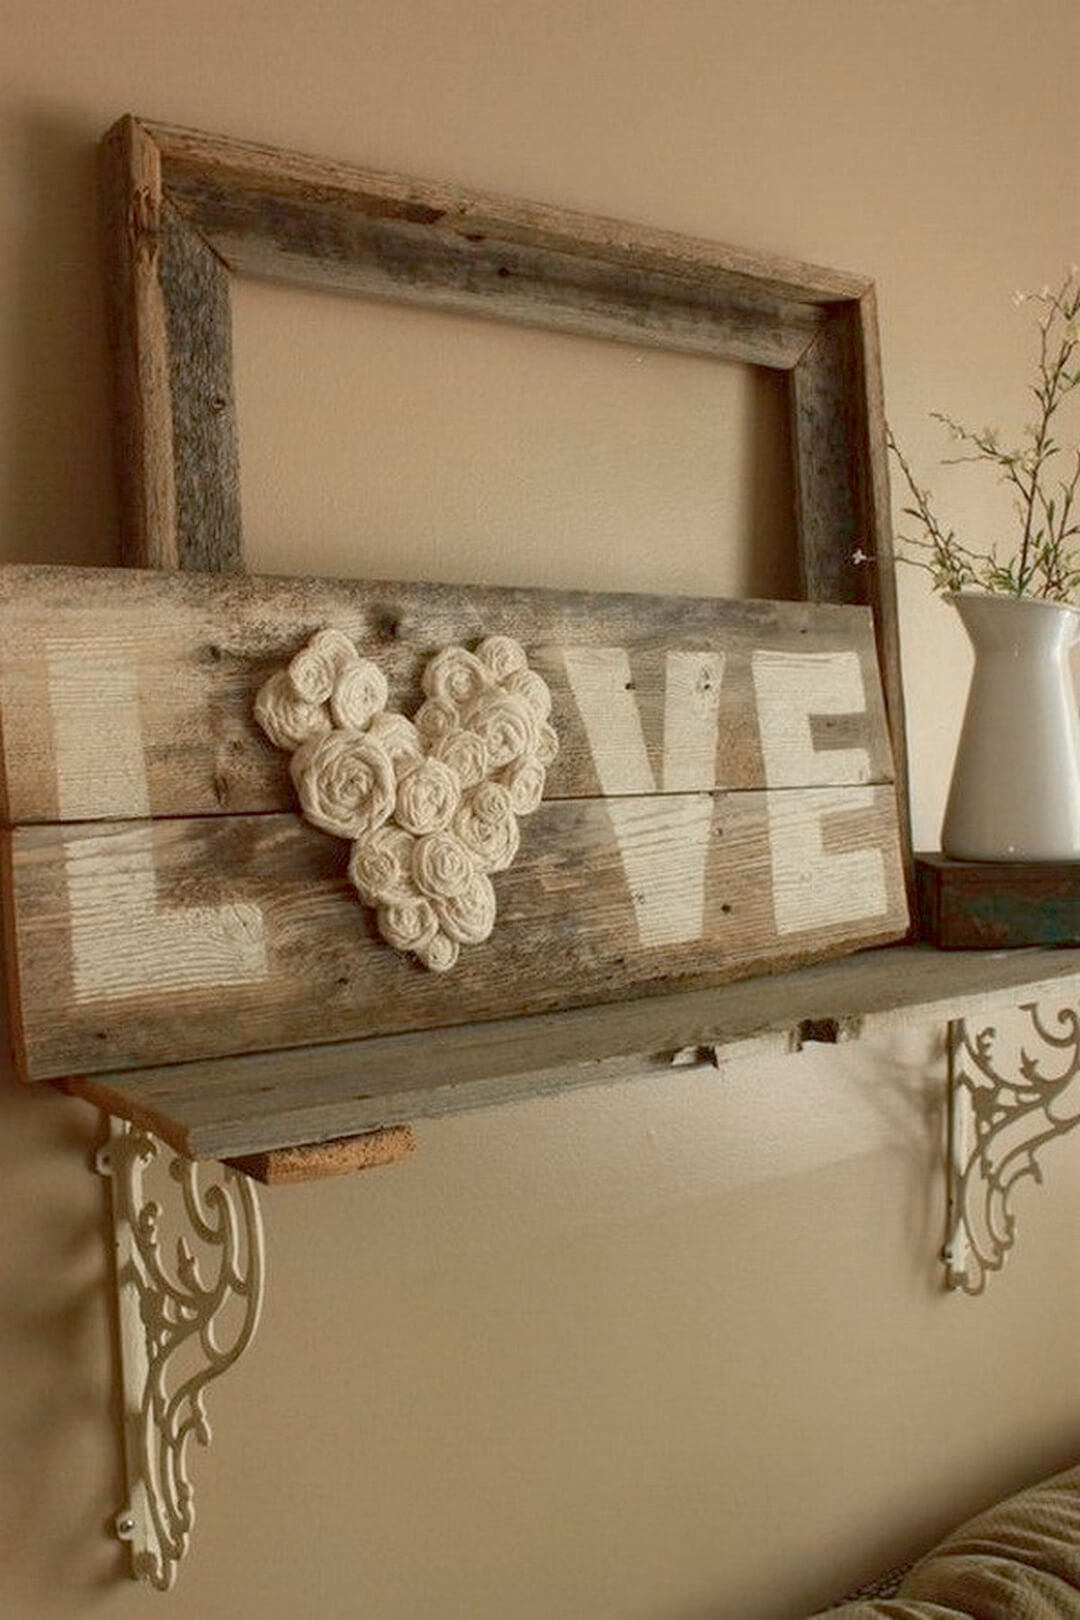 Share Your Love of Shabby Chic Style